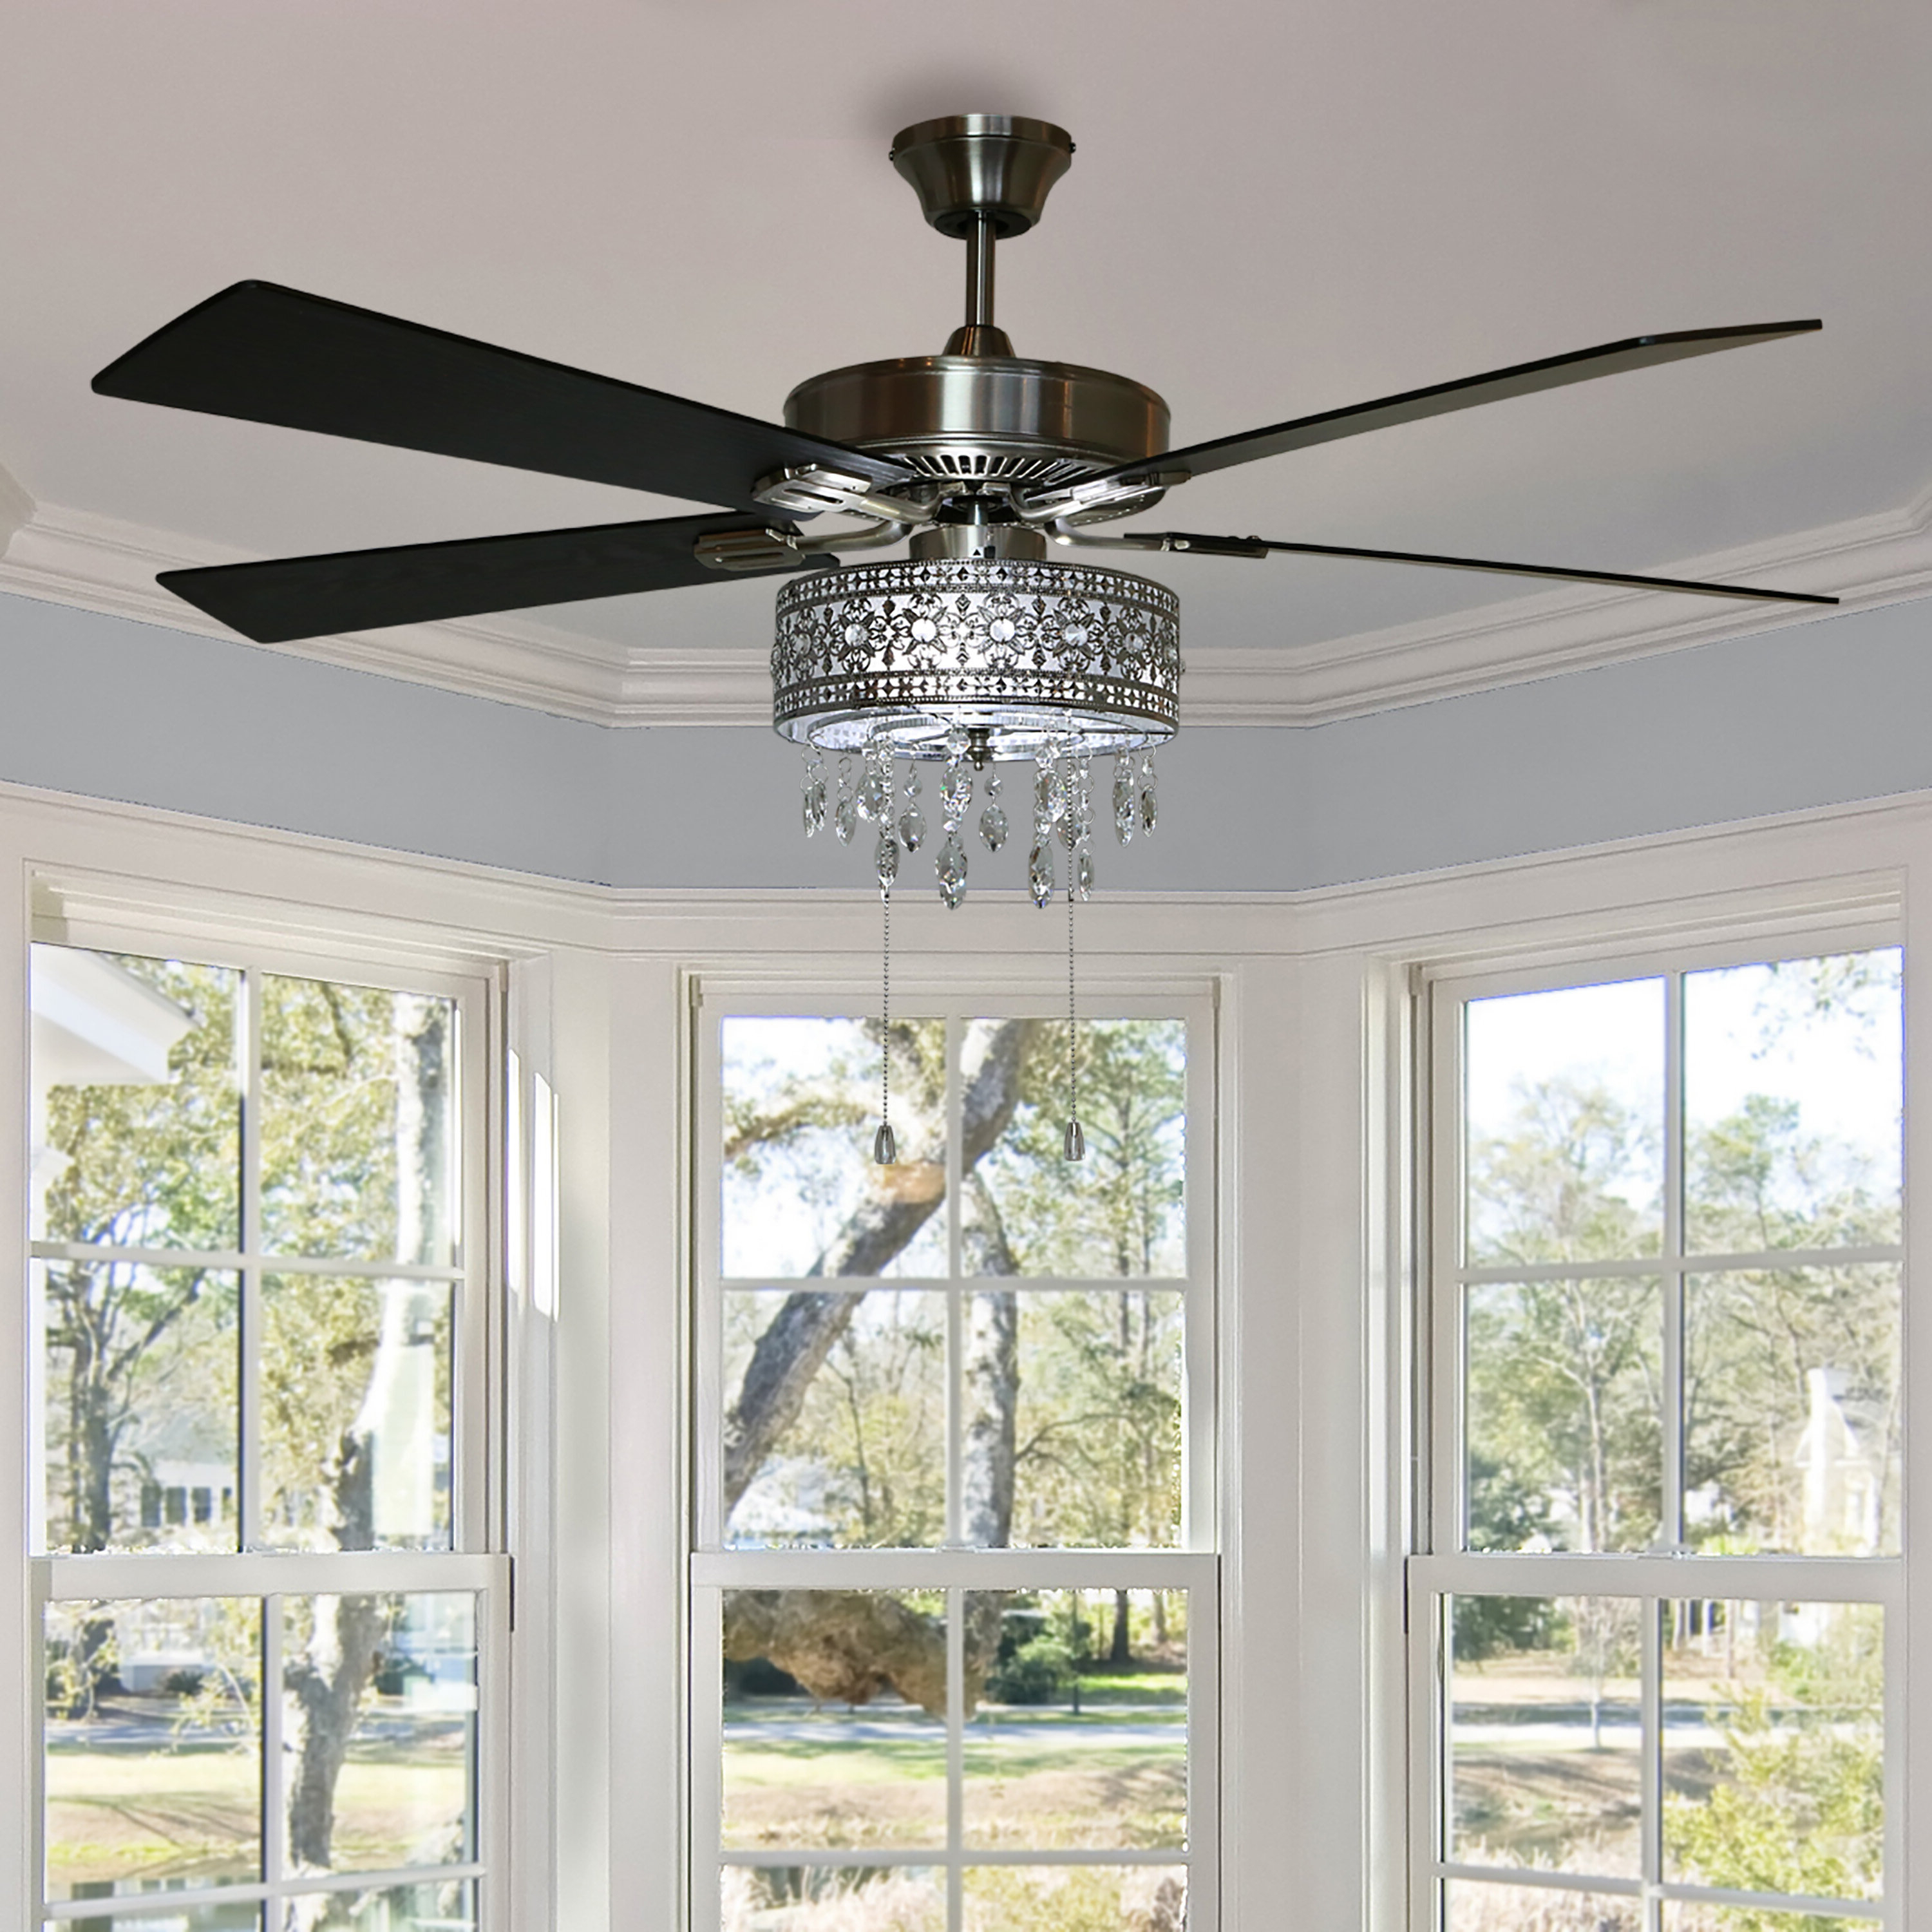 "Trendy Caged Crystal 5 Blade Ceiling Fans Within 52"" Noyes Crystal 5 Blade Ceiling Fan With Remote, Light Kit Included (View 20 of 20)"